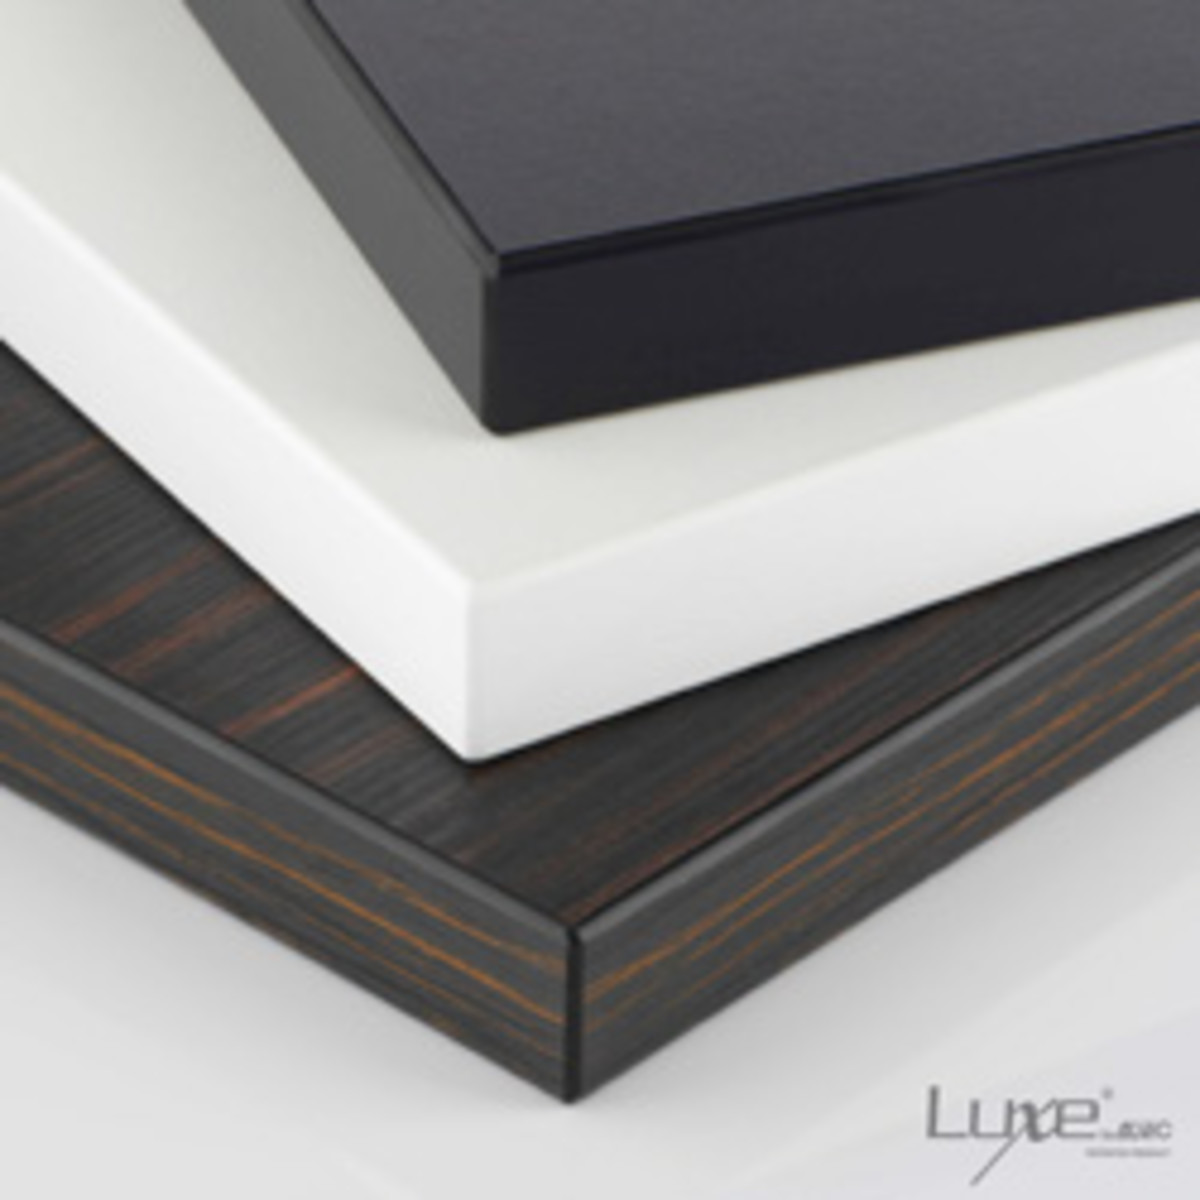 Luxe panels from Lioher Furniture Components.